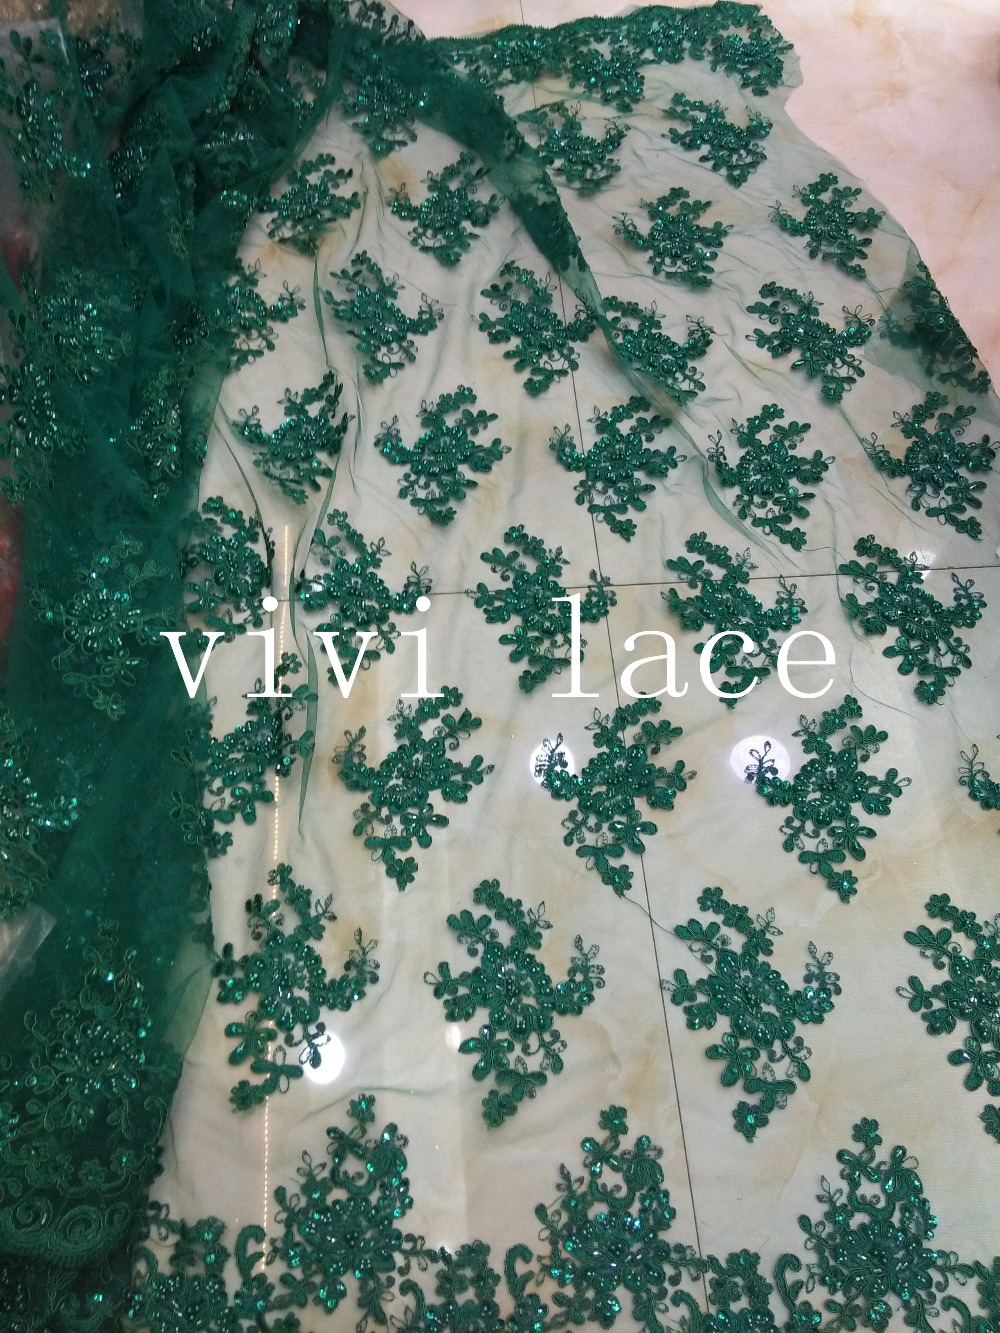 ... beads embroidery luxury mesh lace fabric for wedding evening dress party 47d054115a0e